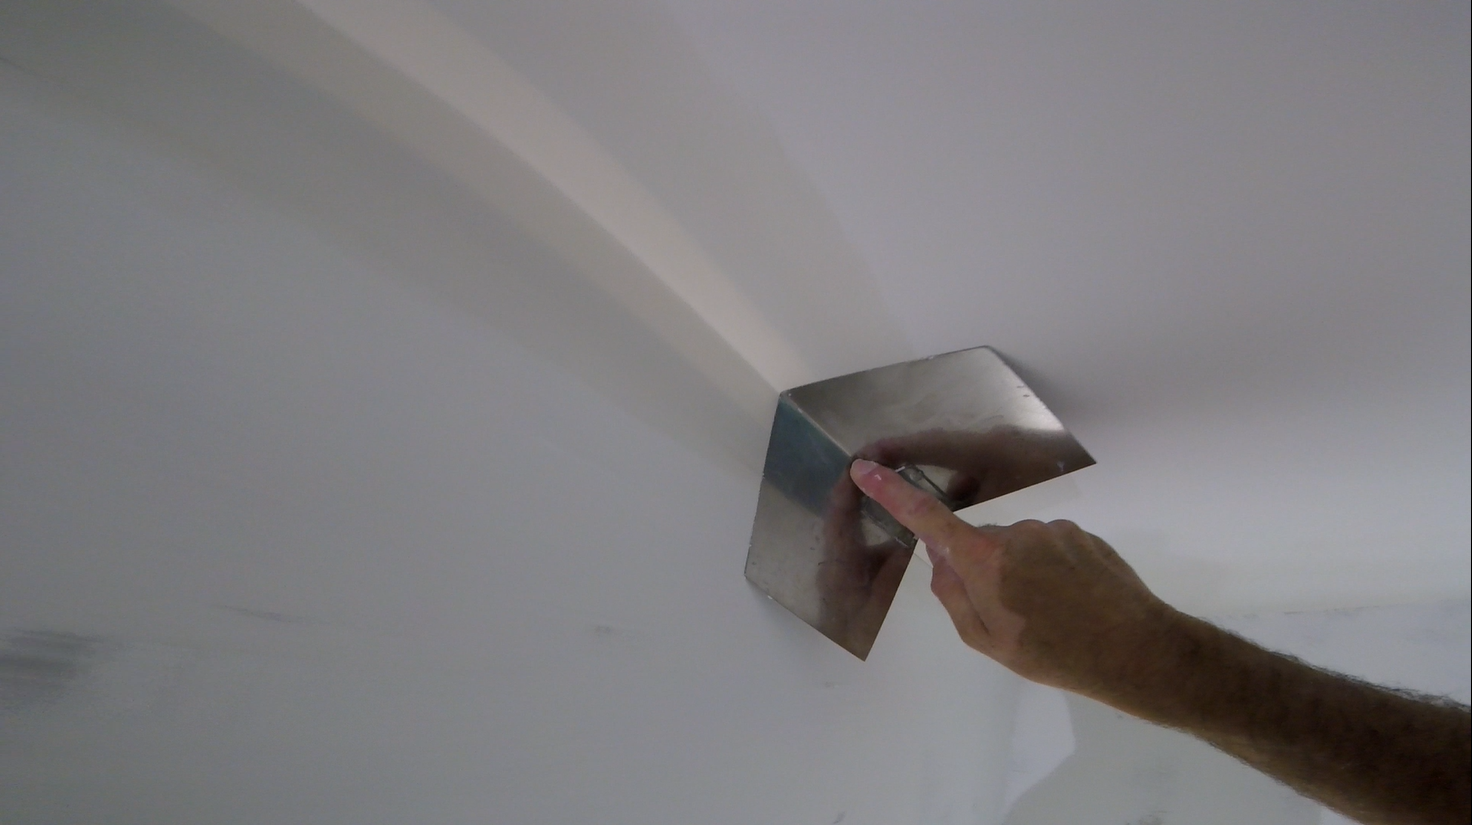 How To Use A Drywall Corner Tool To Finish Inside Corners